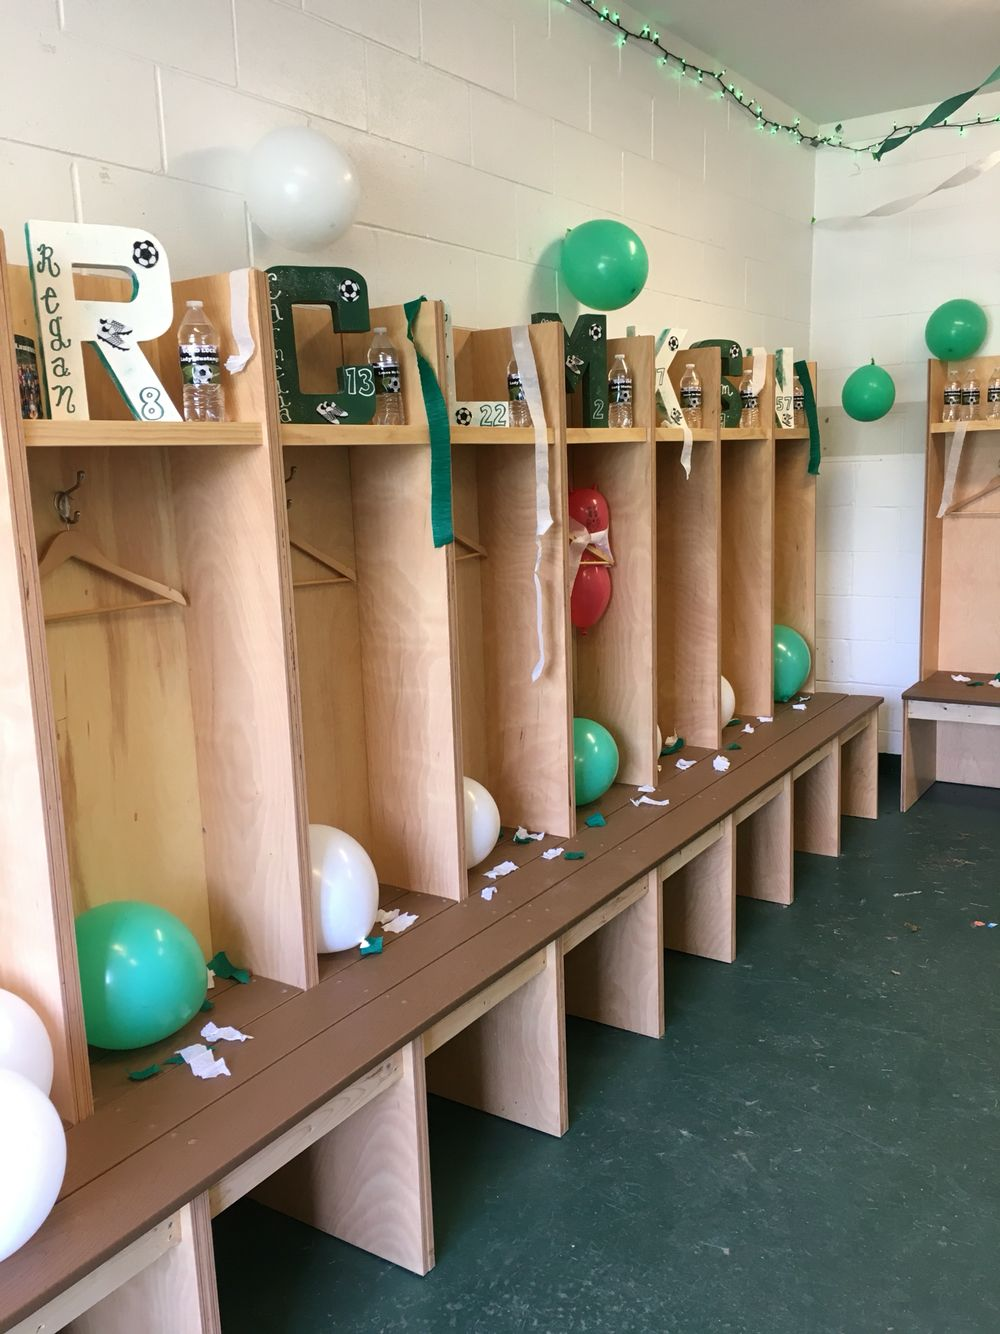 Soccer Locker Room Decorations Paper Mache Block Letters Spray Paint Paint Markers For Names And Numbers Locker Room Decorations Locker Room Soccer Locker